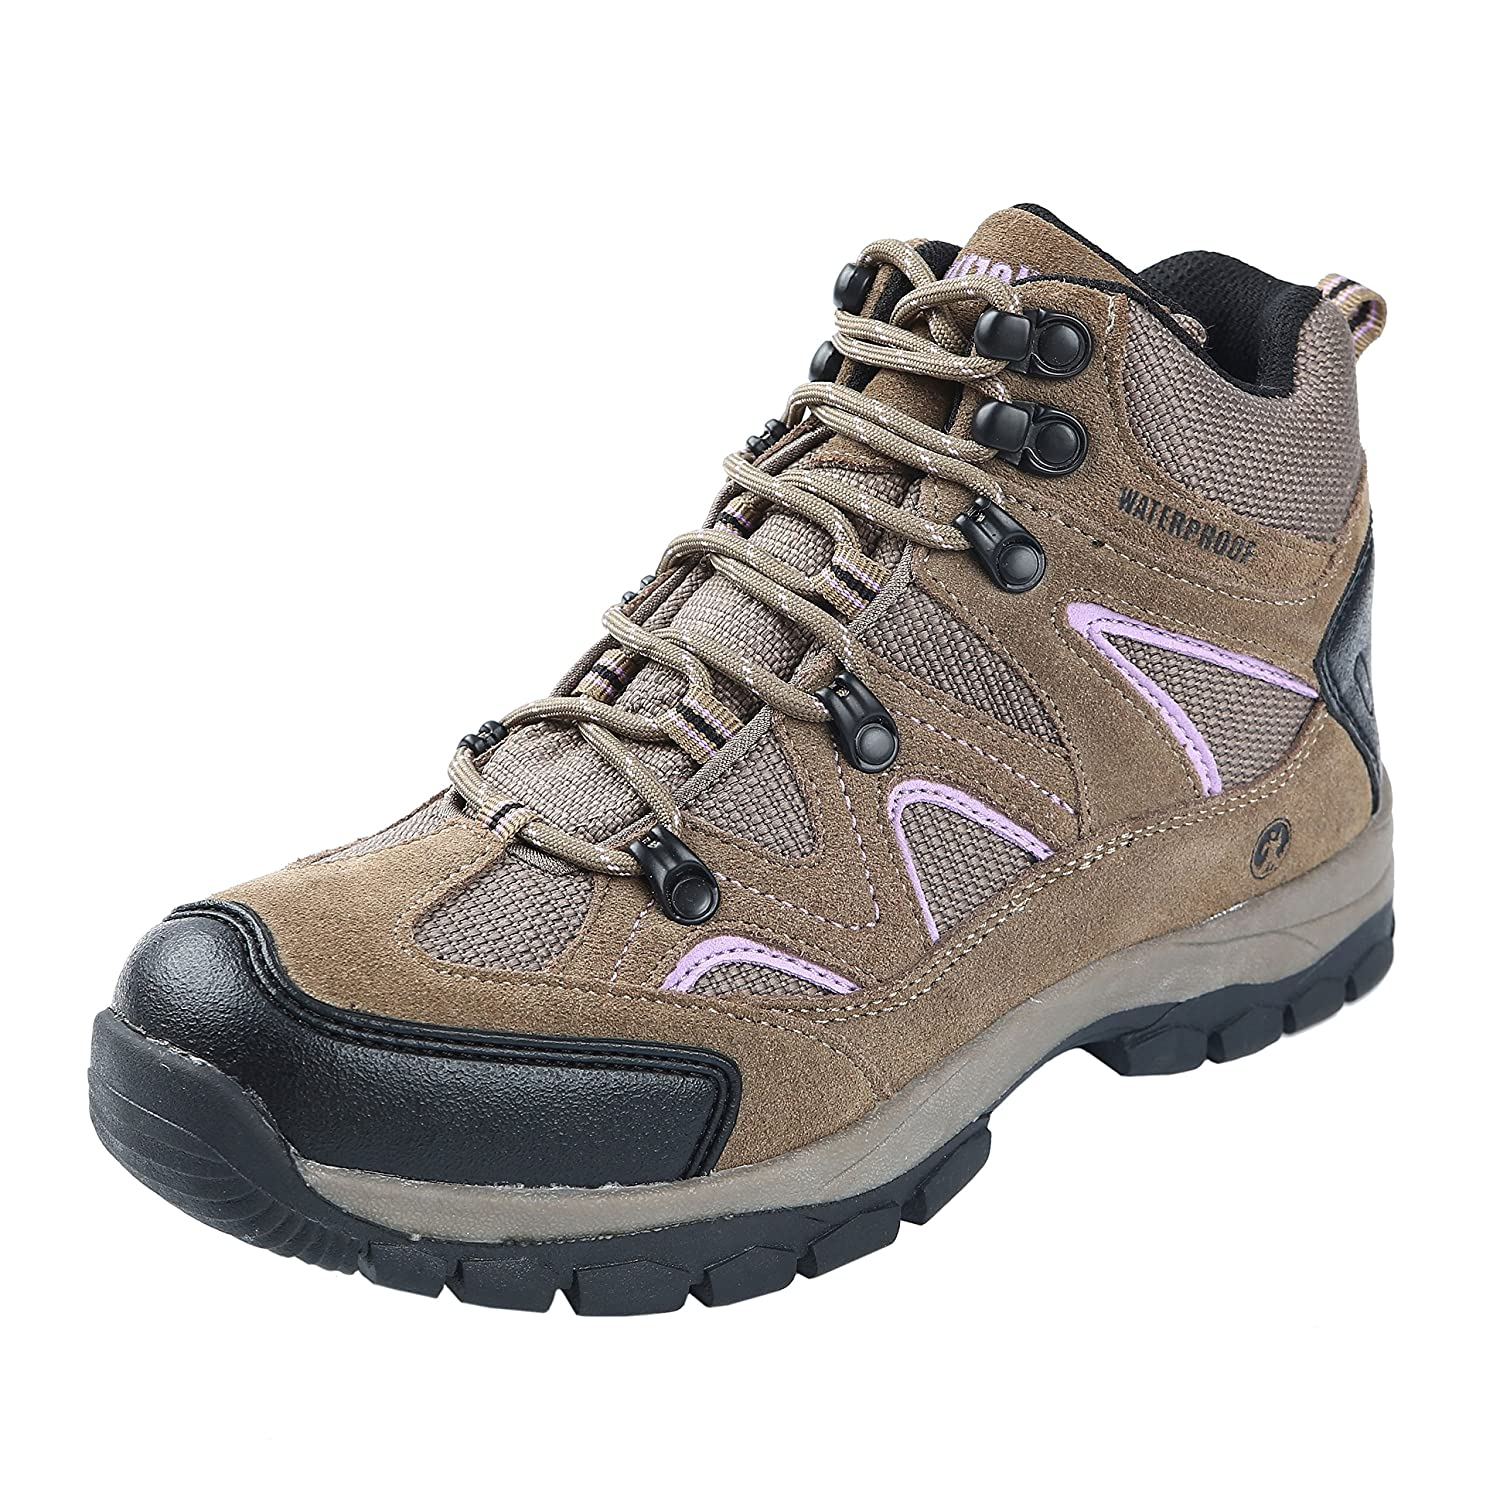 6669920ad05 Northside Women's Snohomish Waterproof Hiking Boot